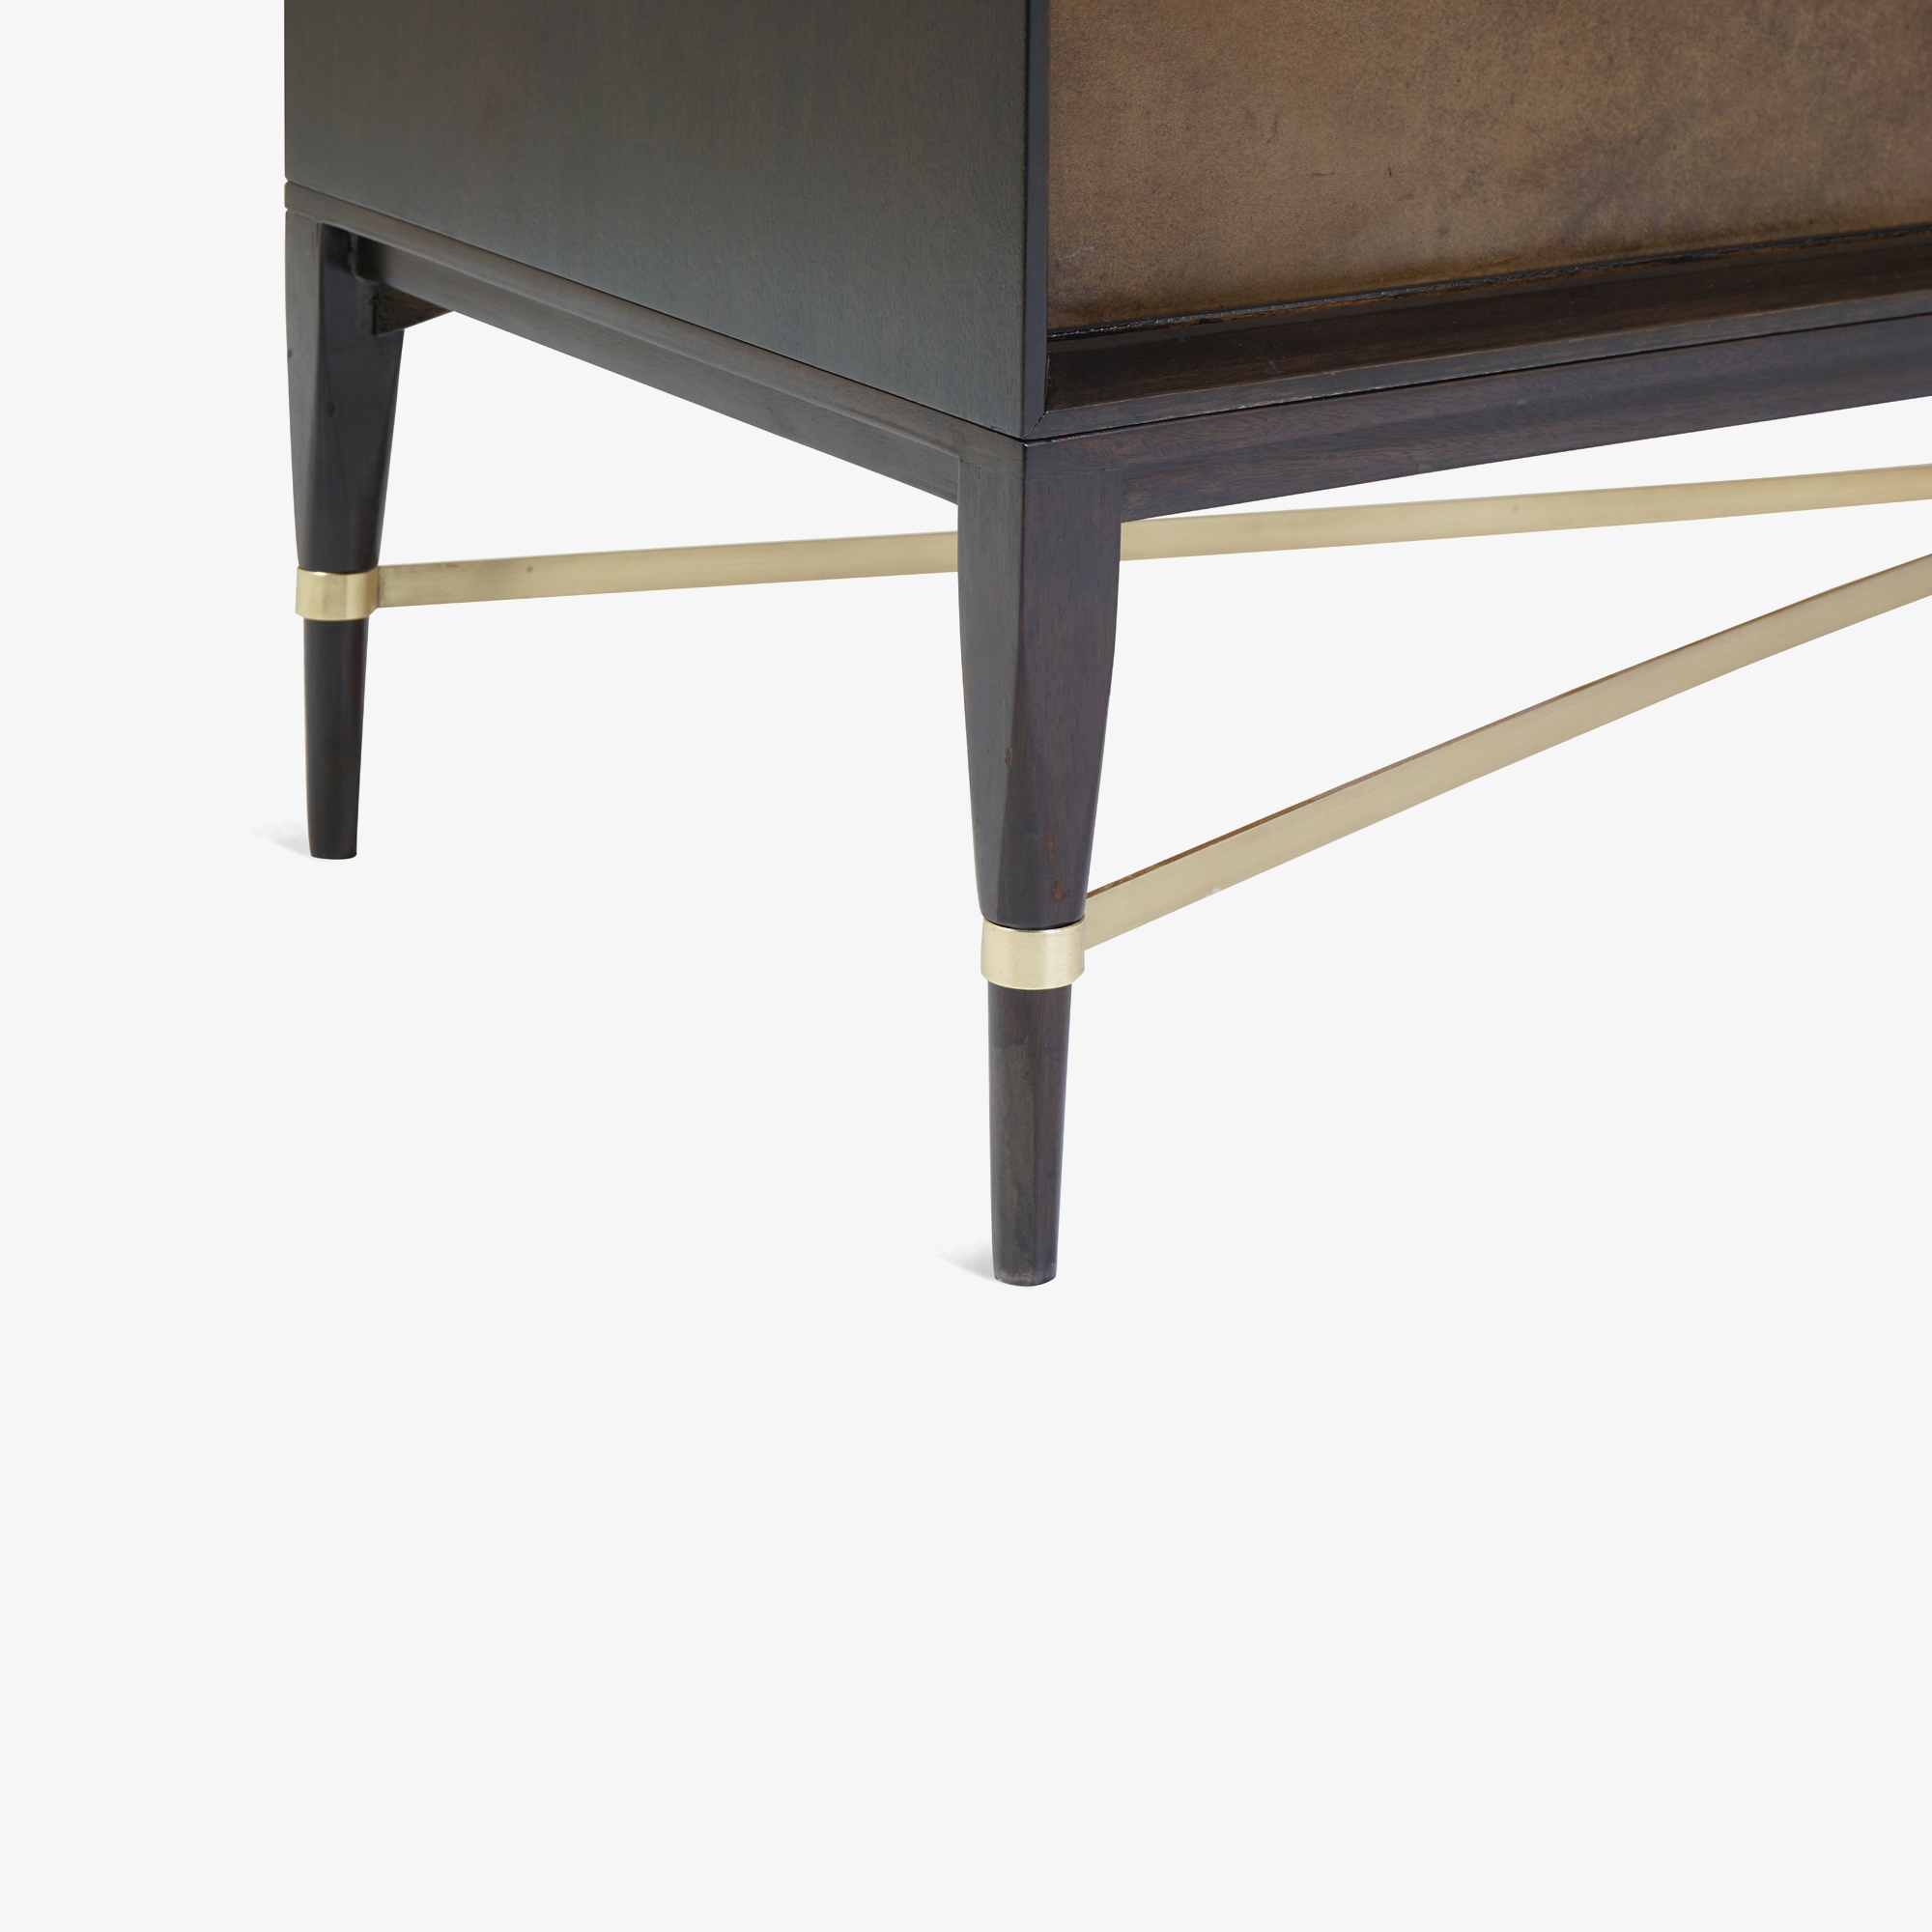 Walnut & Brass Cross Stretcher Credenza by Paul McCobb for Calvin Group9.png